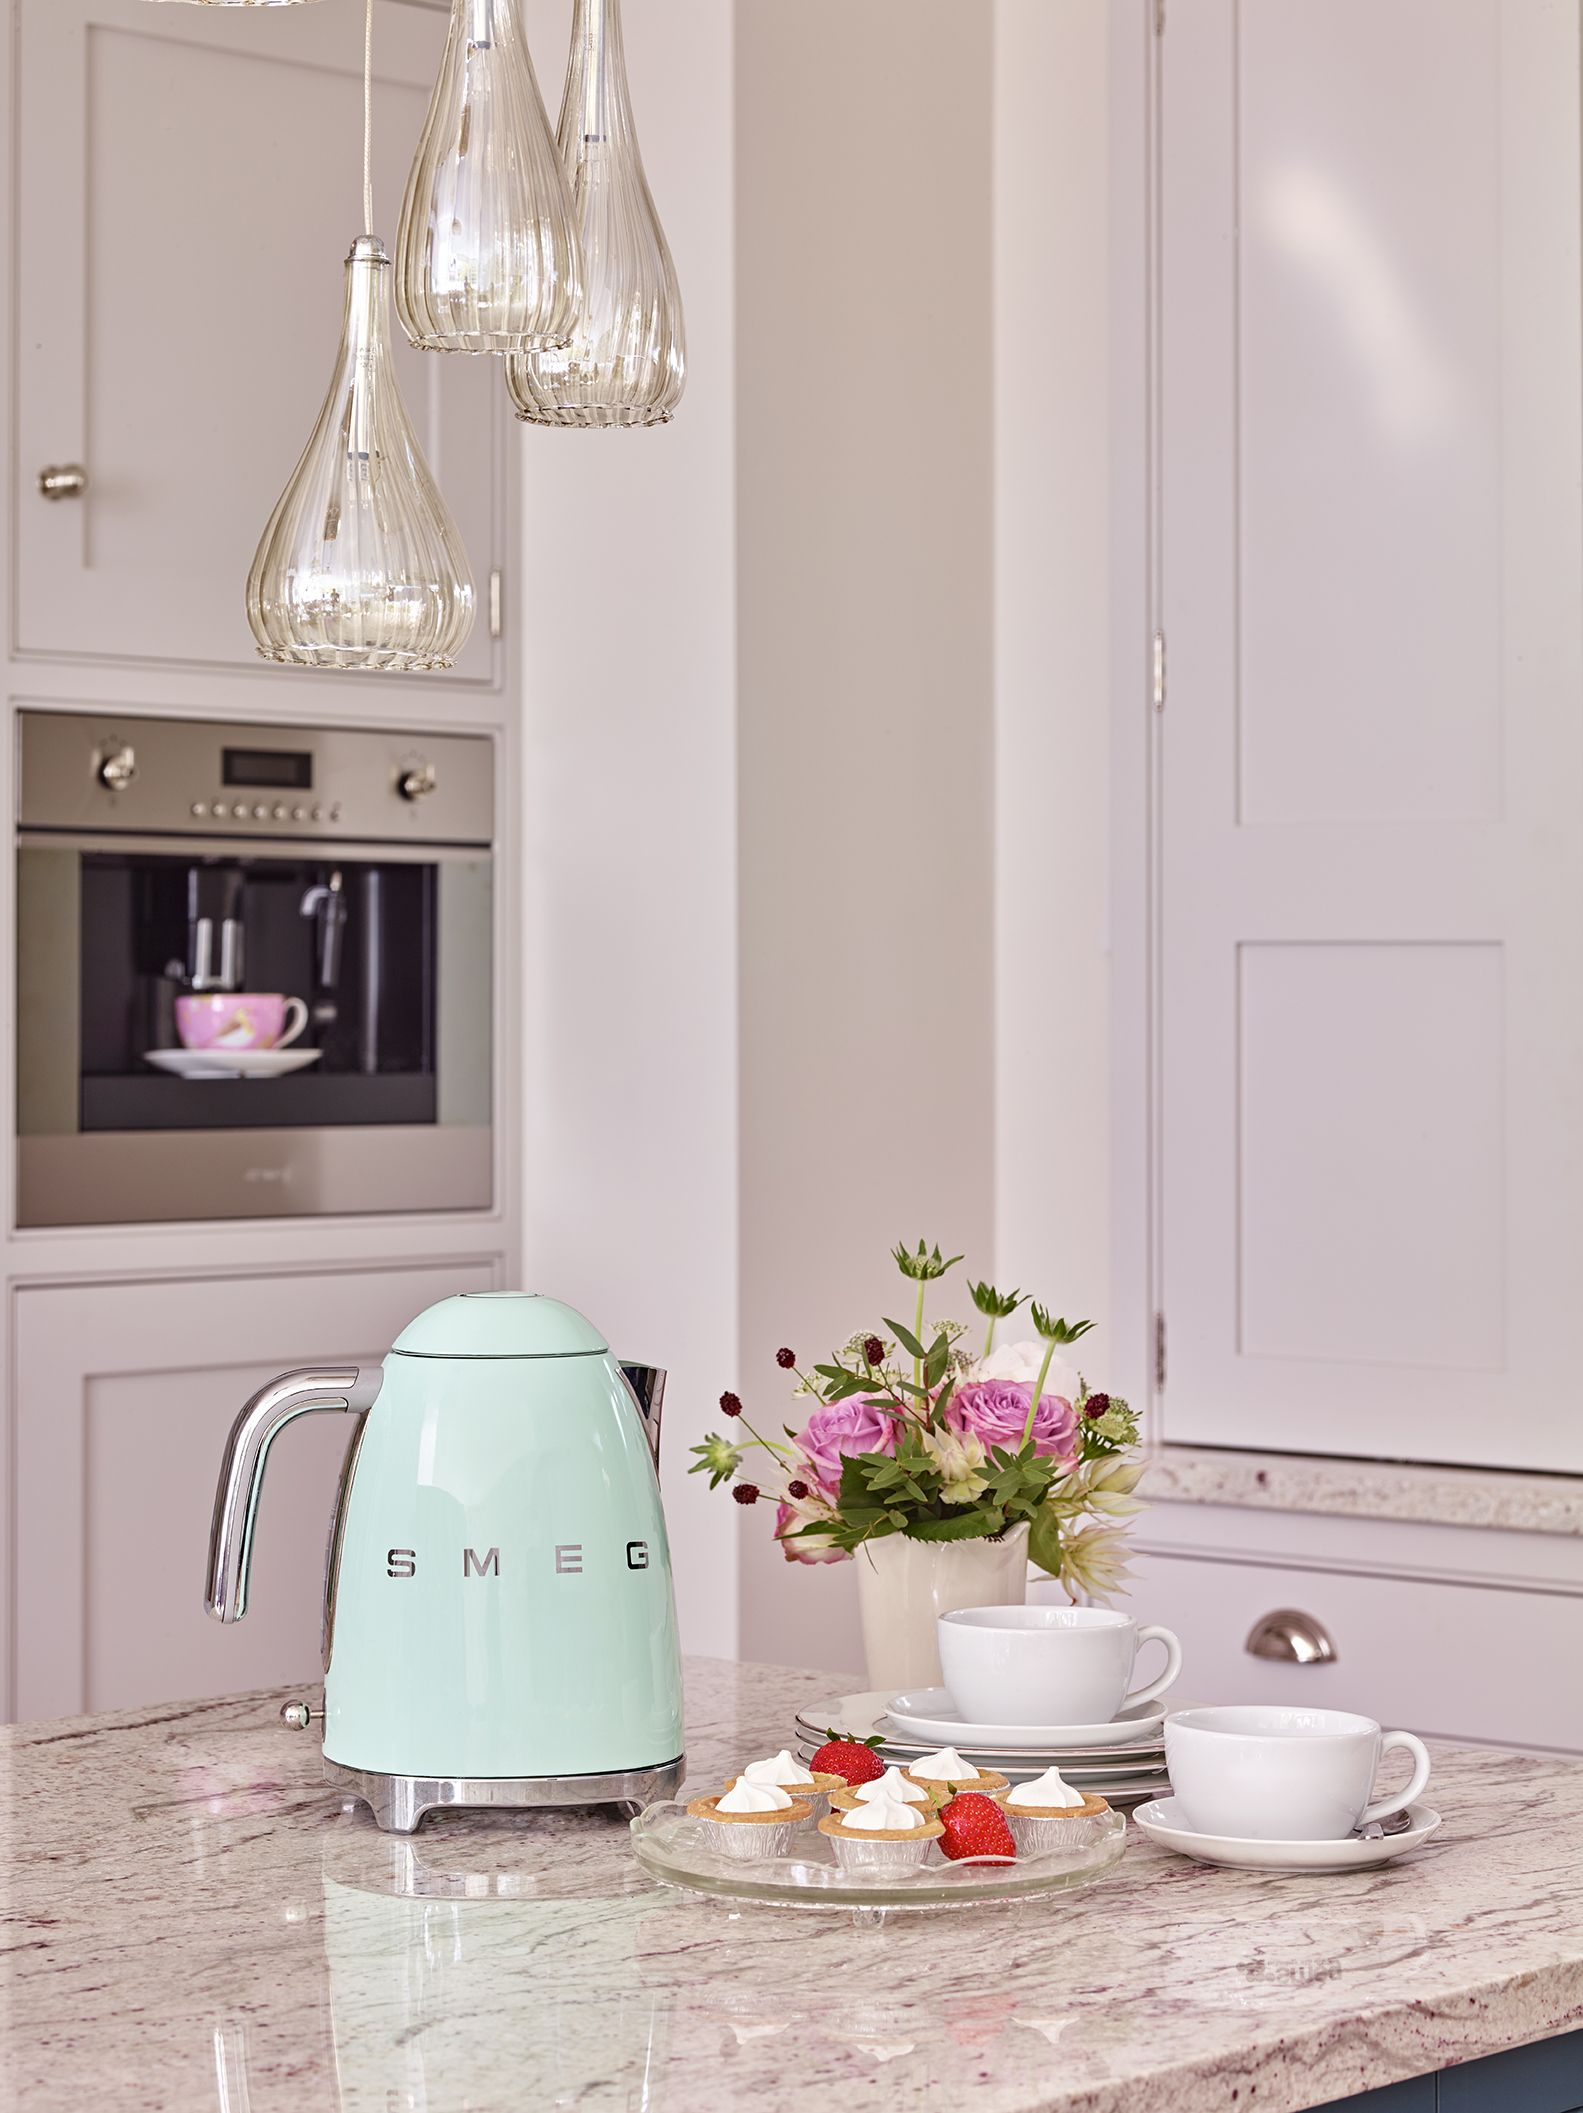 Dreaming Of The S M E G Retro Electric Kettle In Mint Or Cream Its Even More Adorable Person